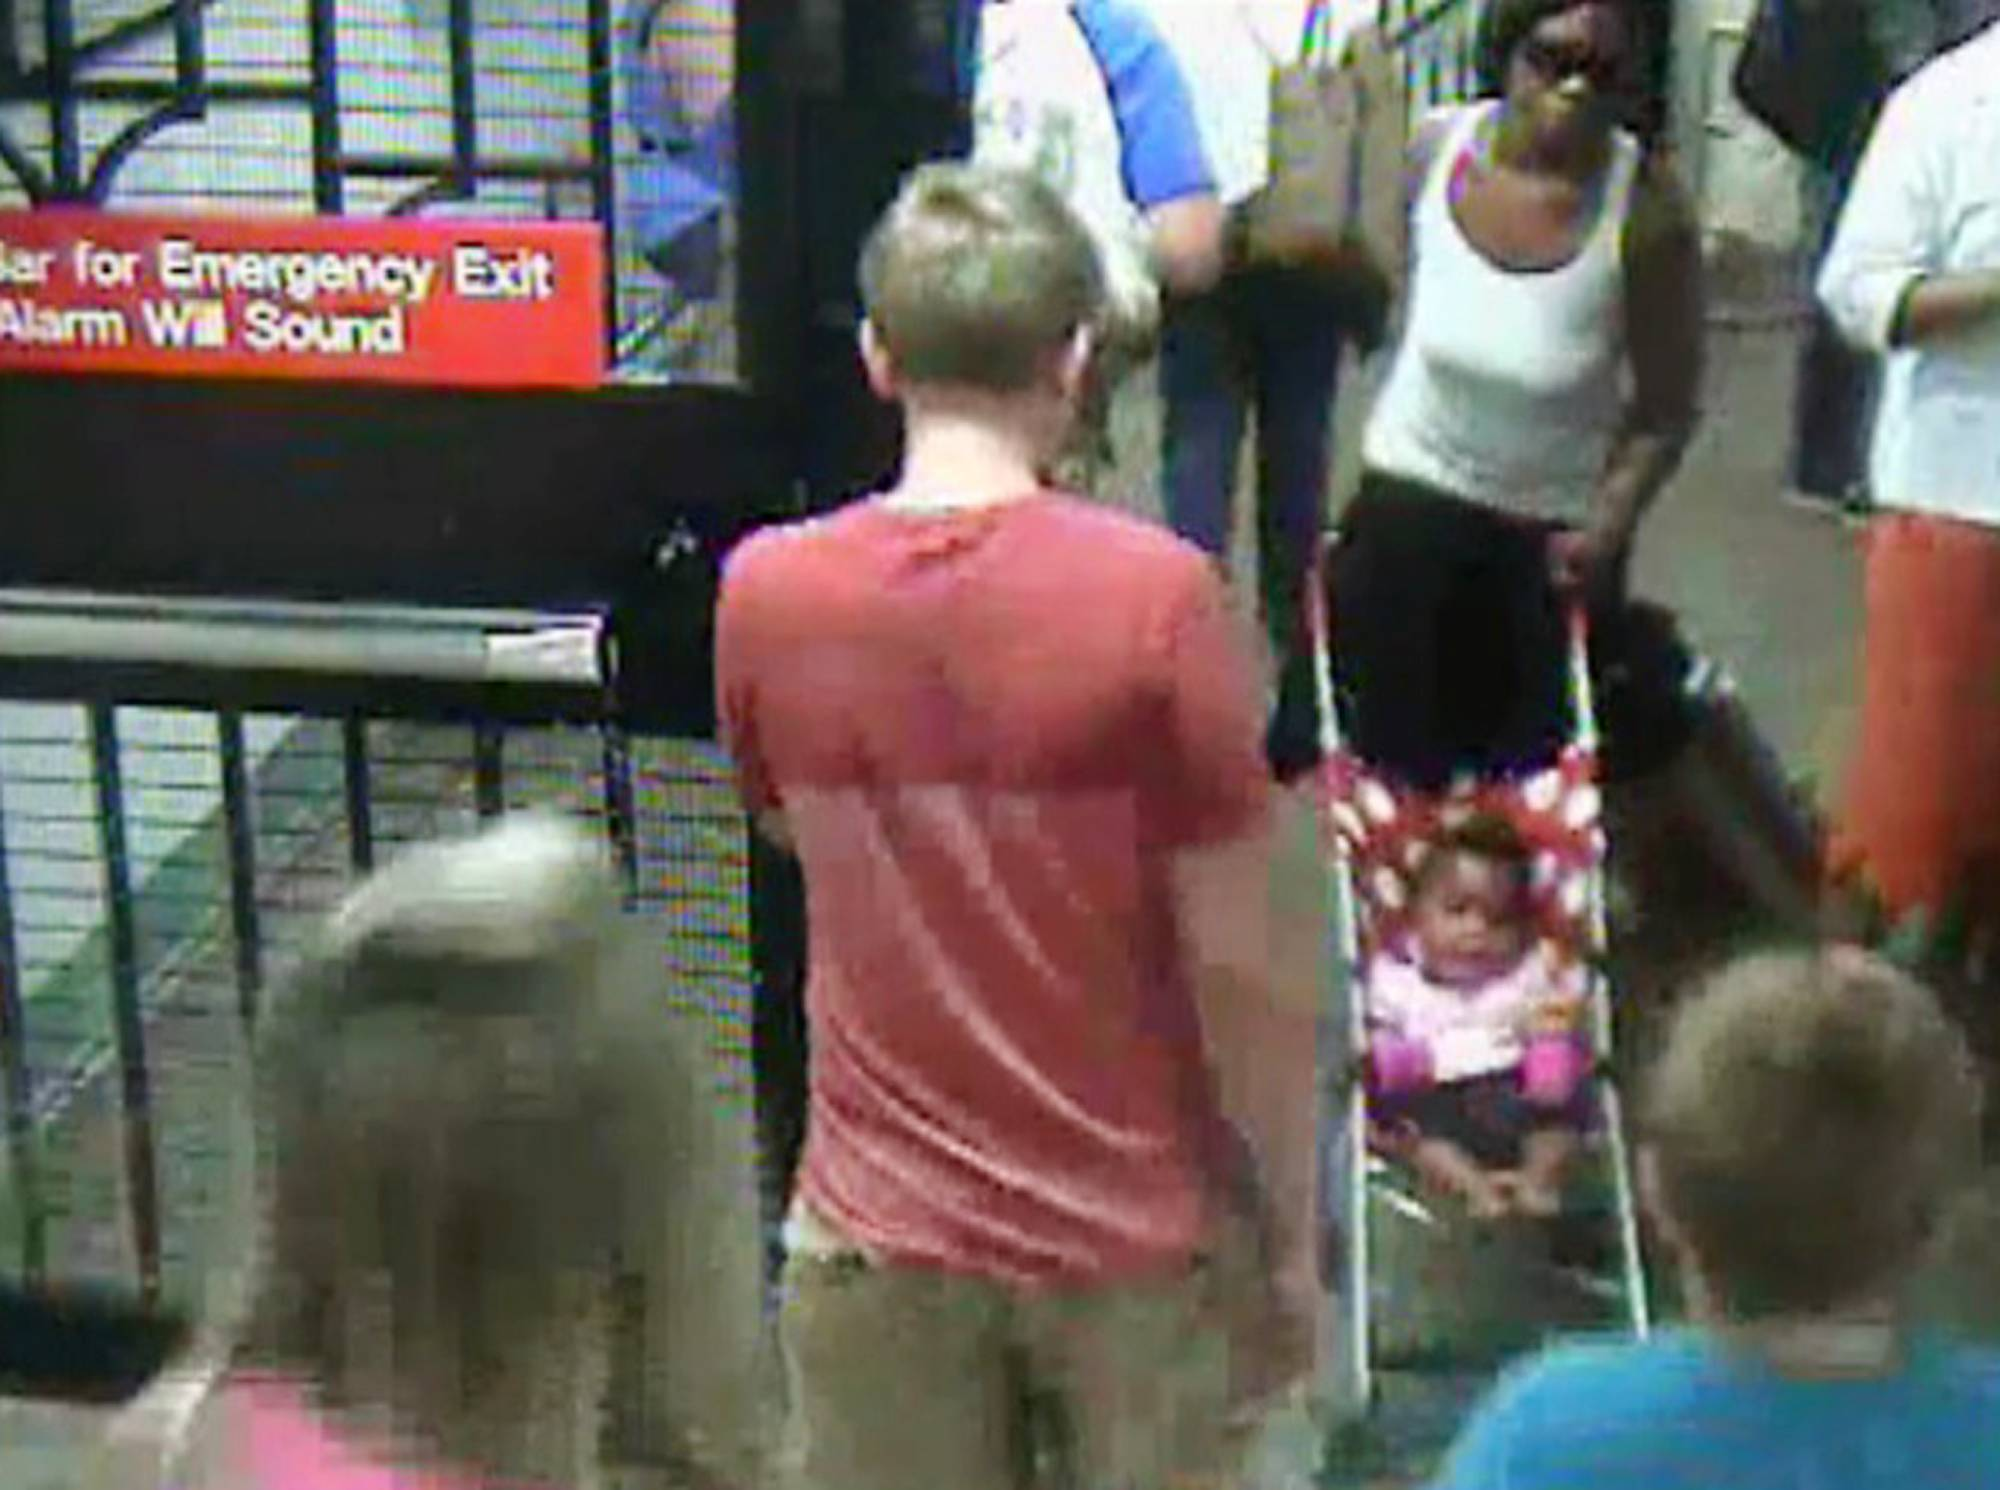 In this Monday, July 7, 2014 surveillance camera image provided by the New York Police Department, a woman, top right, pushes her baby girl in a stroller at the Columbus Circle subway station in New York. The 20-year-old woman, who is suspected of abandoning the baby at the Manhattan station, was in police custody on Tuesday.